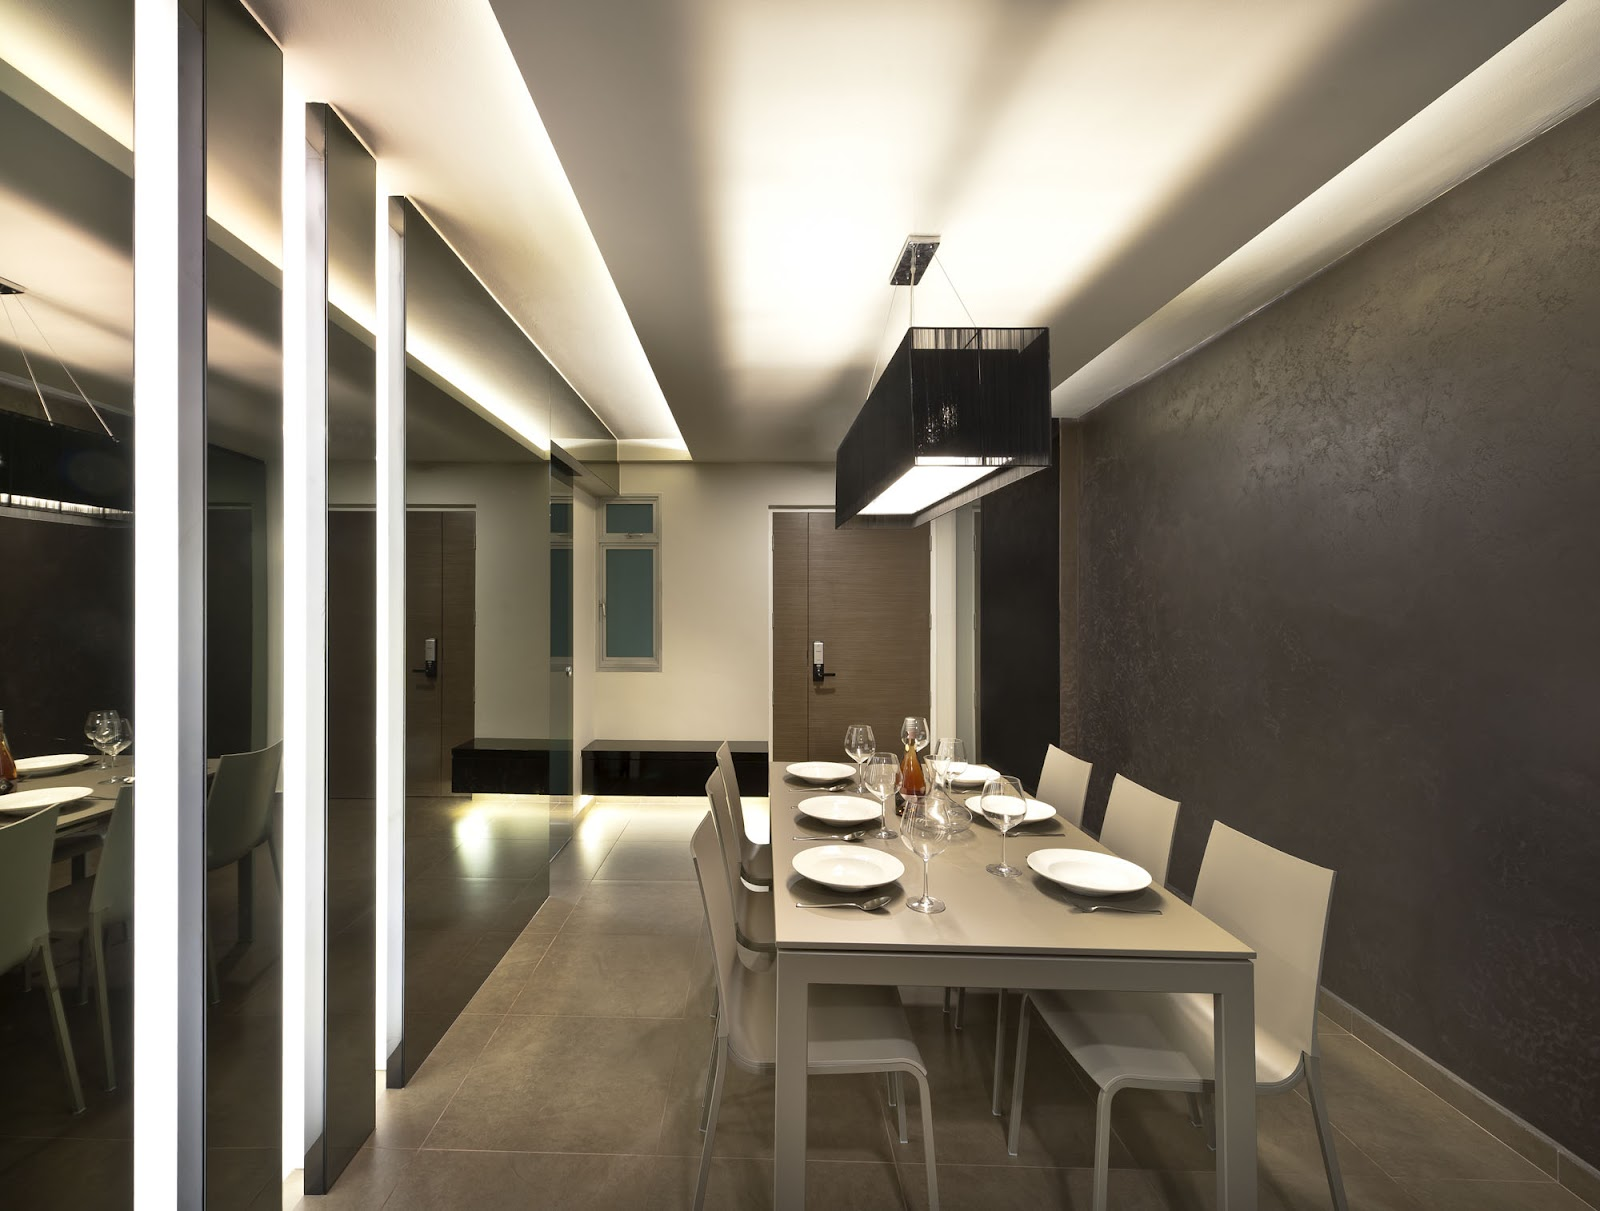 Rezt relax interior design 4 room hdb yishun for Interior design ideas for dining area